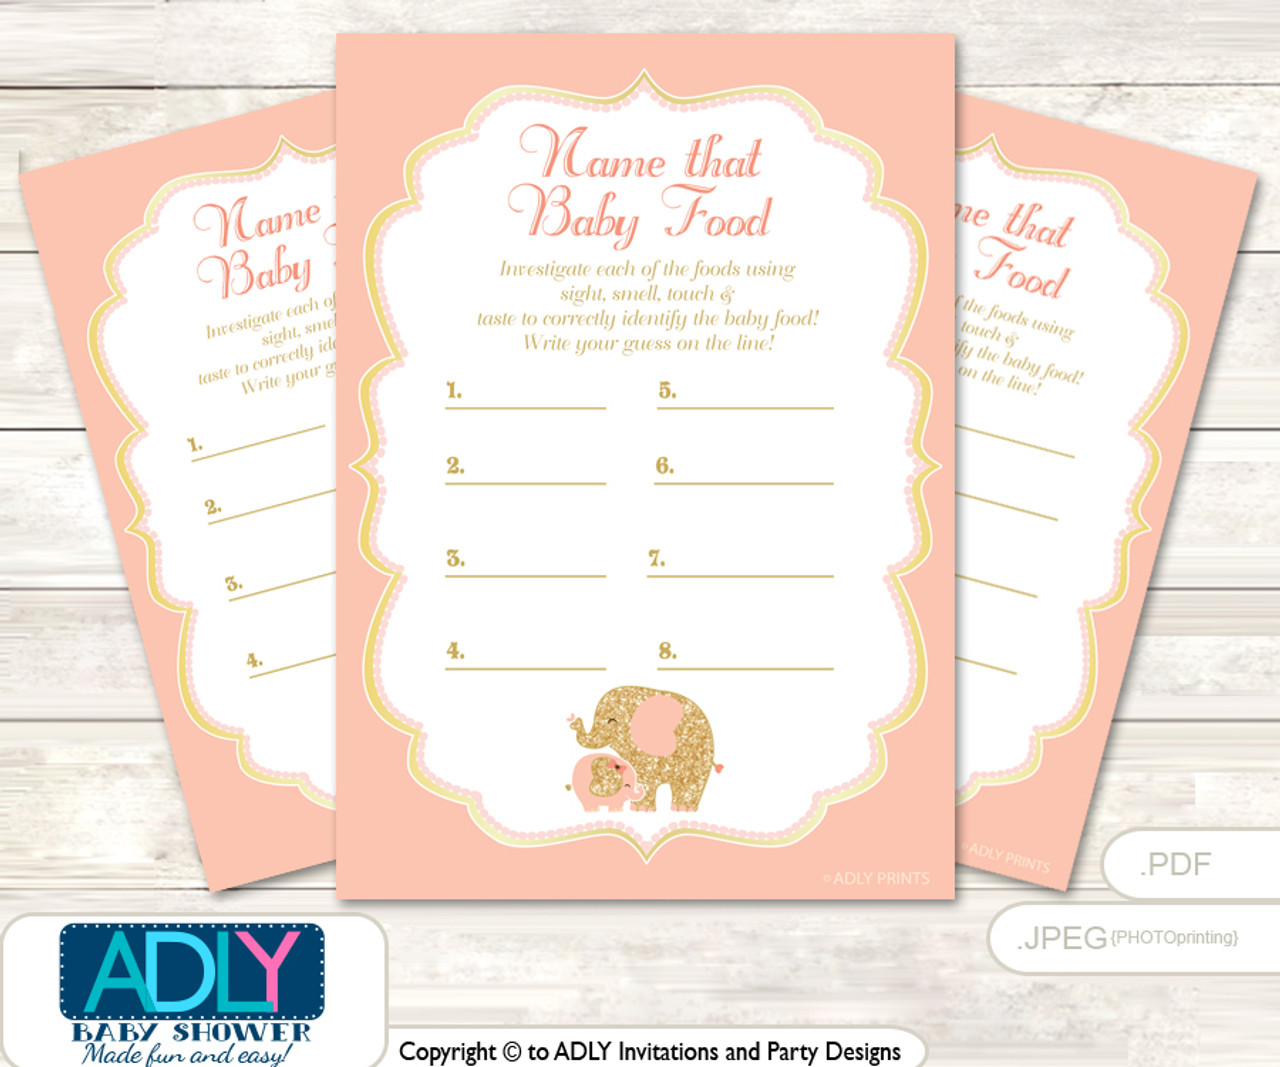 image about Baby Food Game Printable named Peach Elephant Wager Youngster Food stuff Recreation or Track record That Child Food items Activity for a Little one Shower, Gold Coral